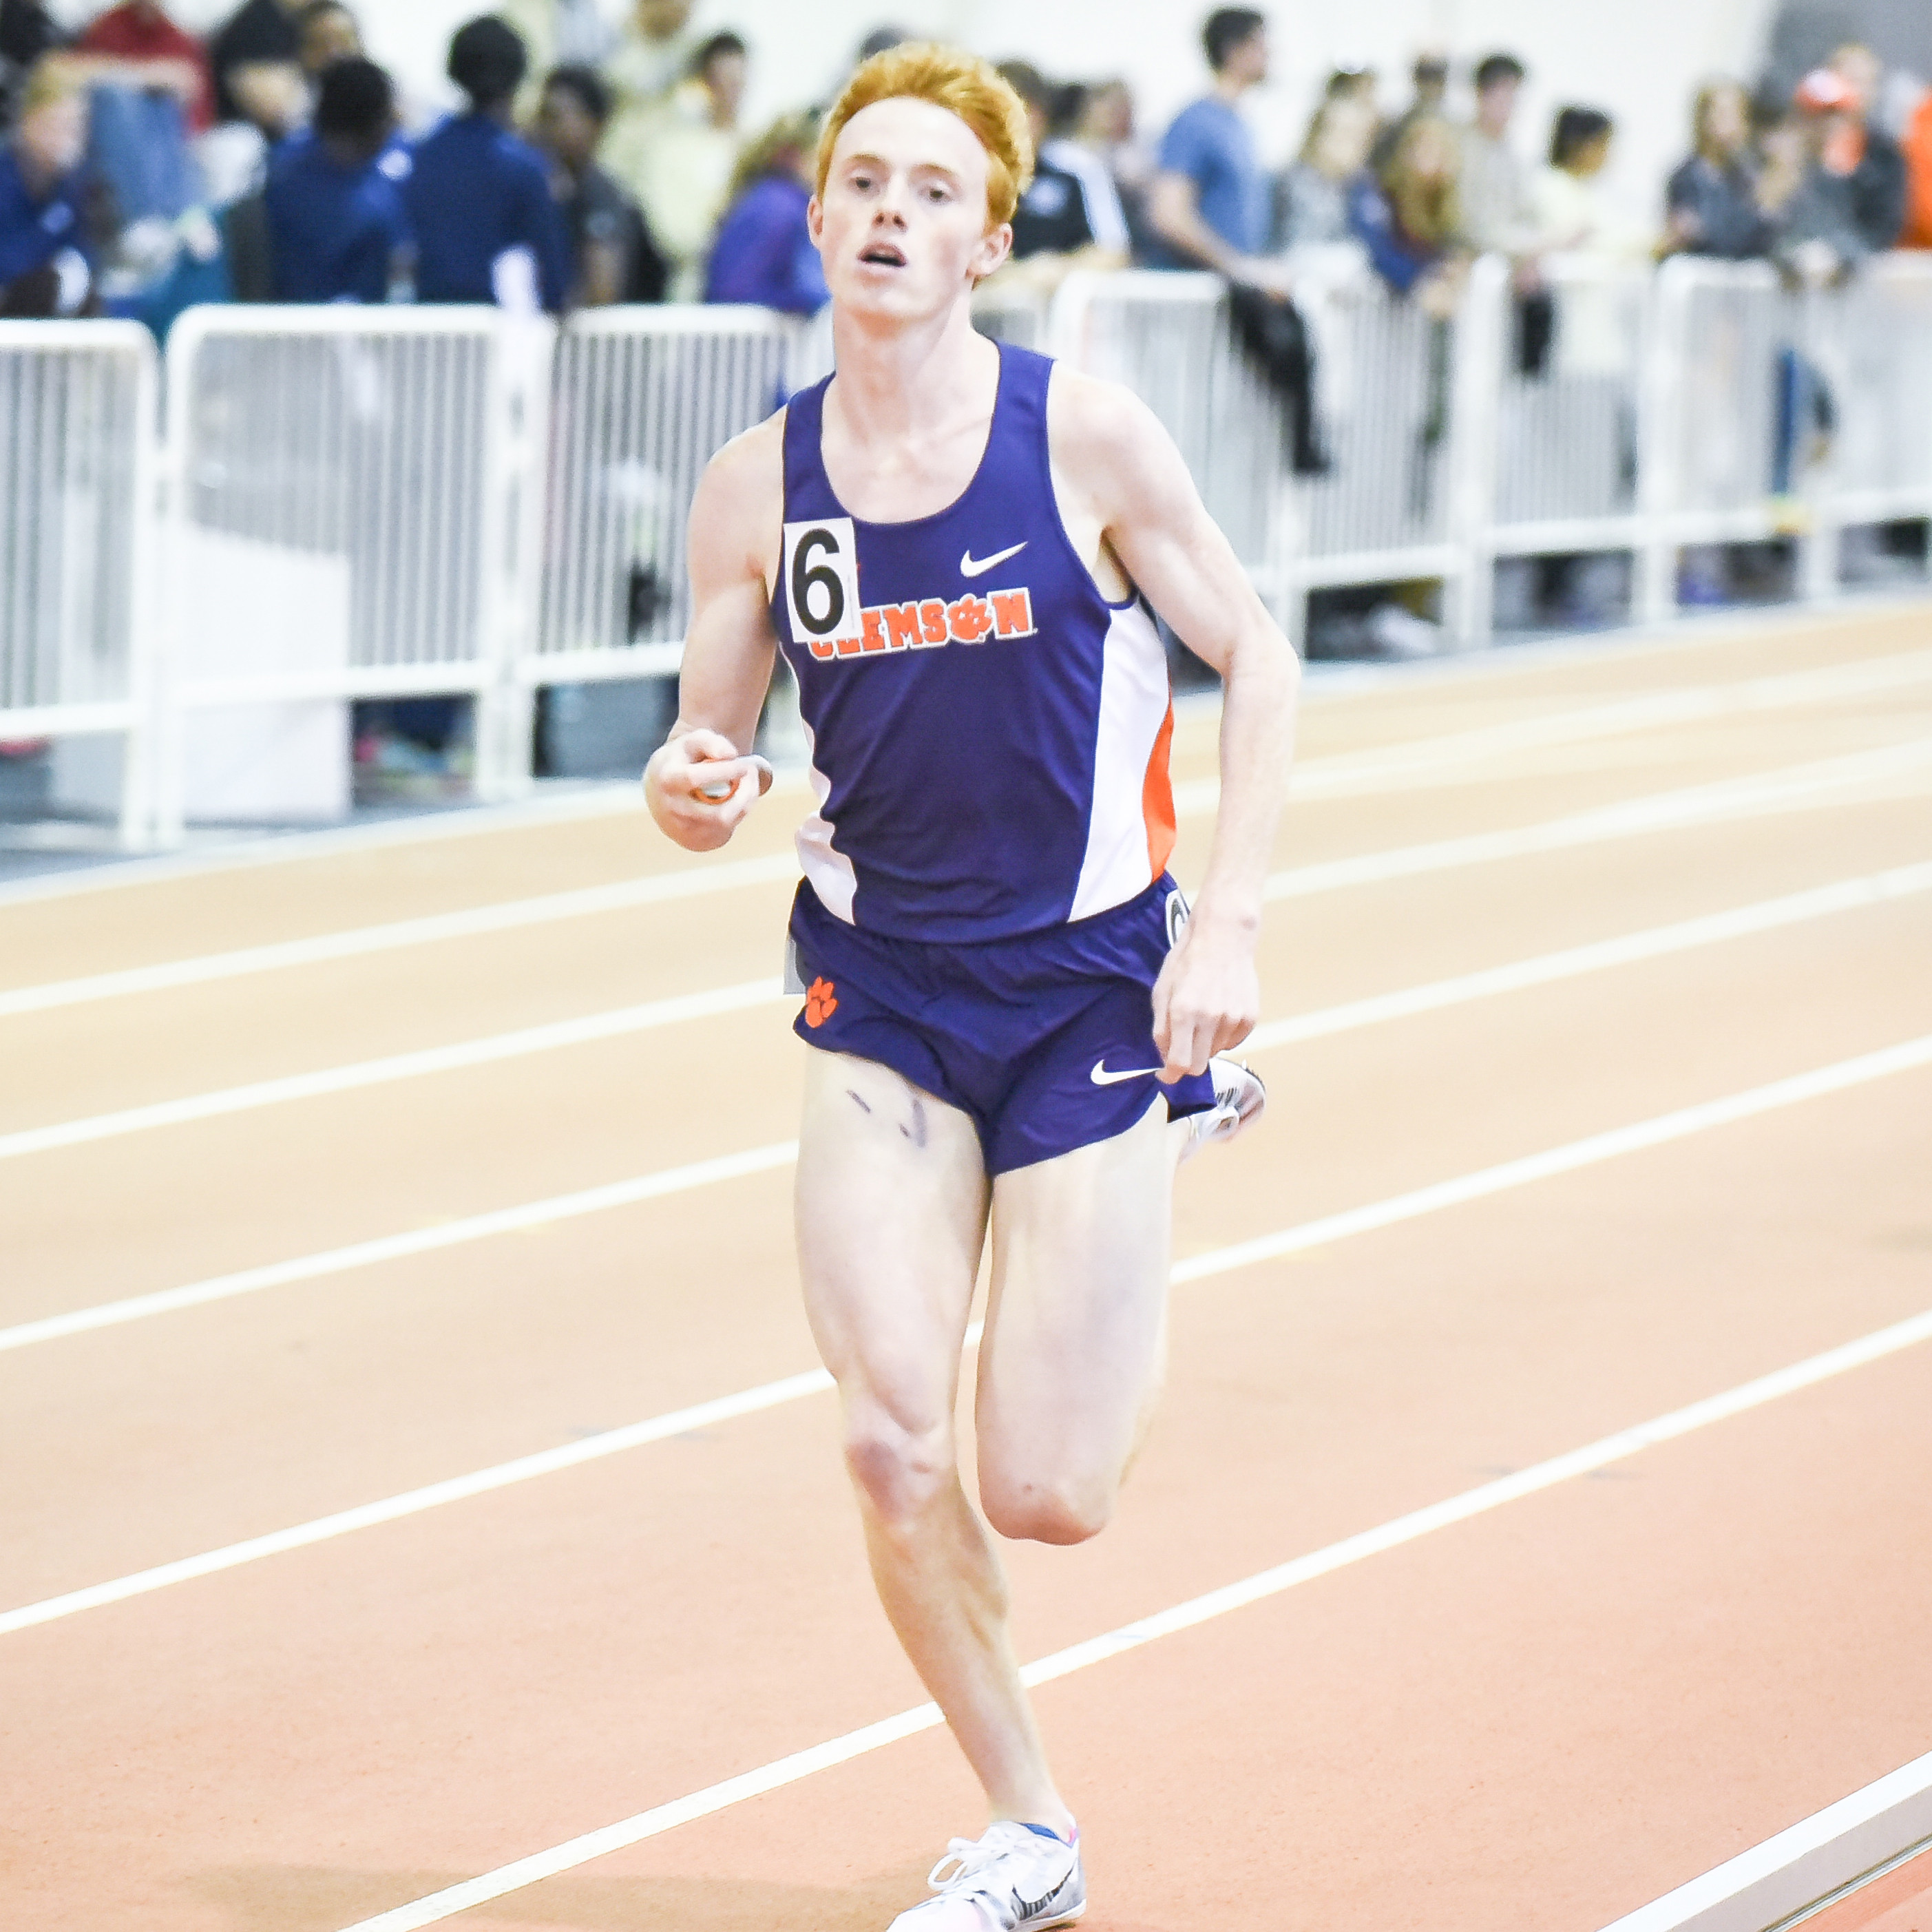 Men's DMR Kicks Off Charlie Thomas Invitational